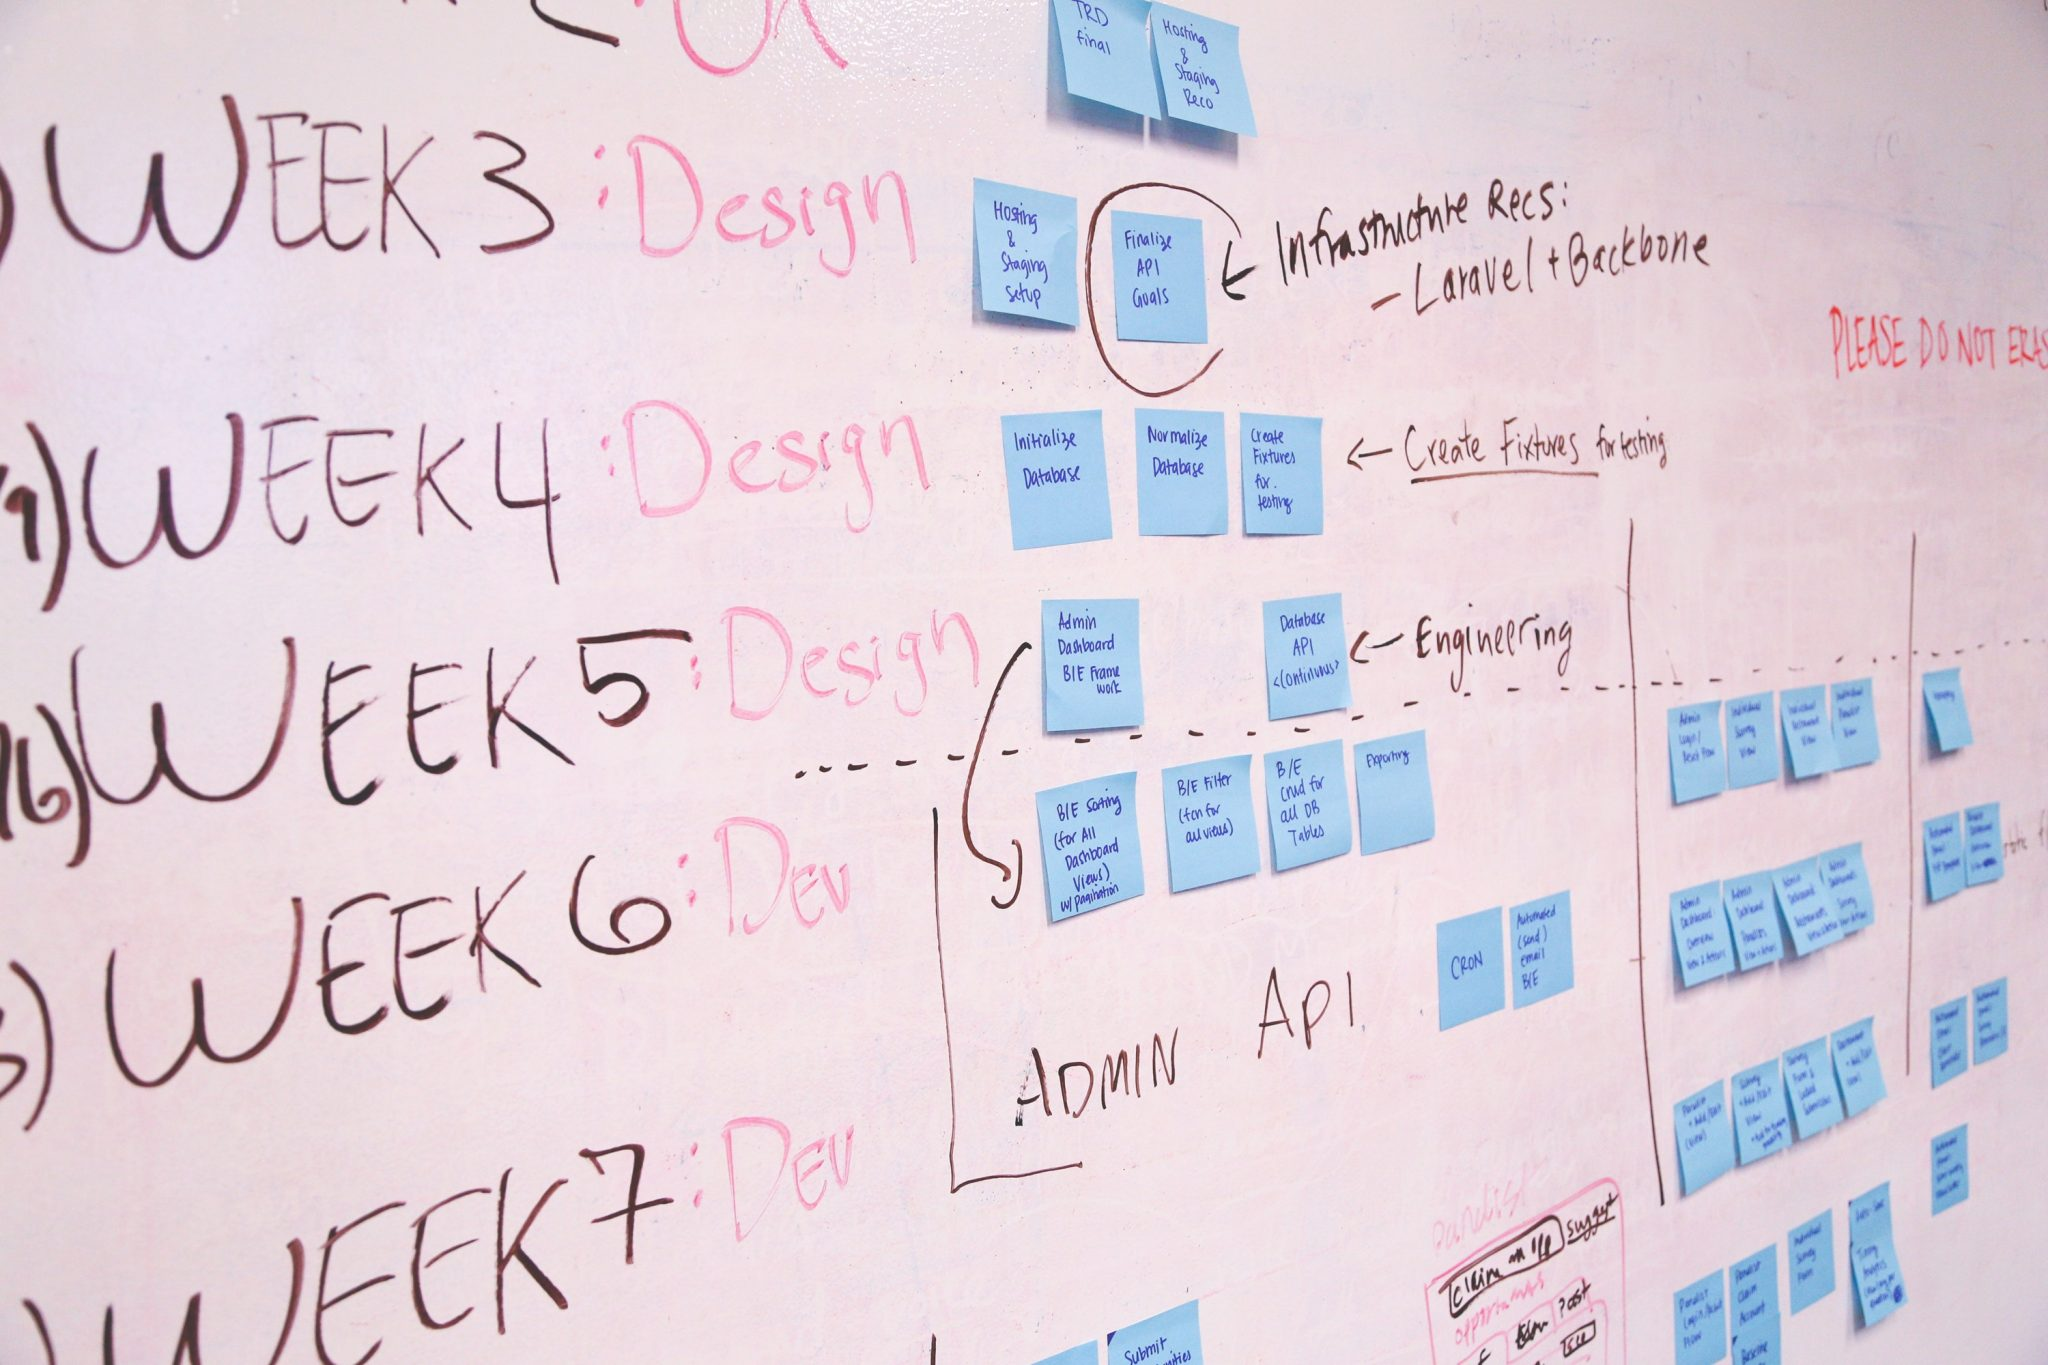 Lean Startup helps to accelerate the development of your product through experimentation.